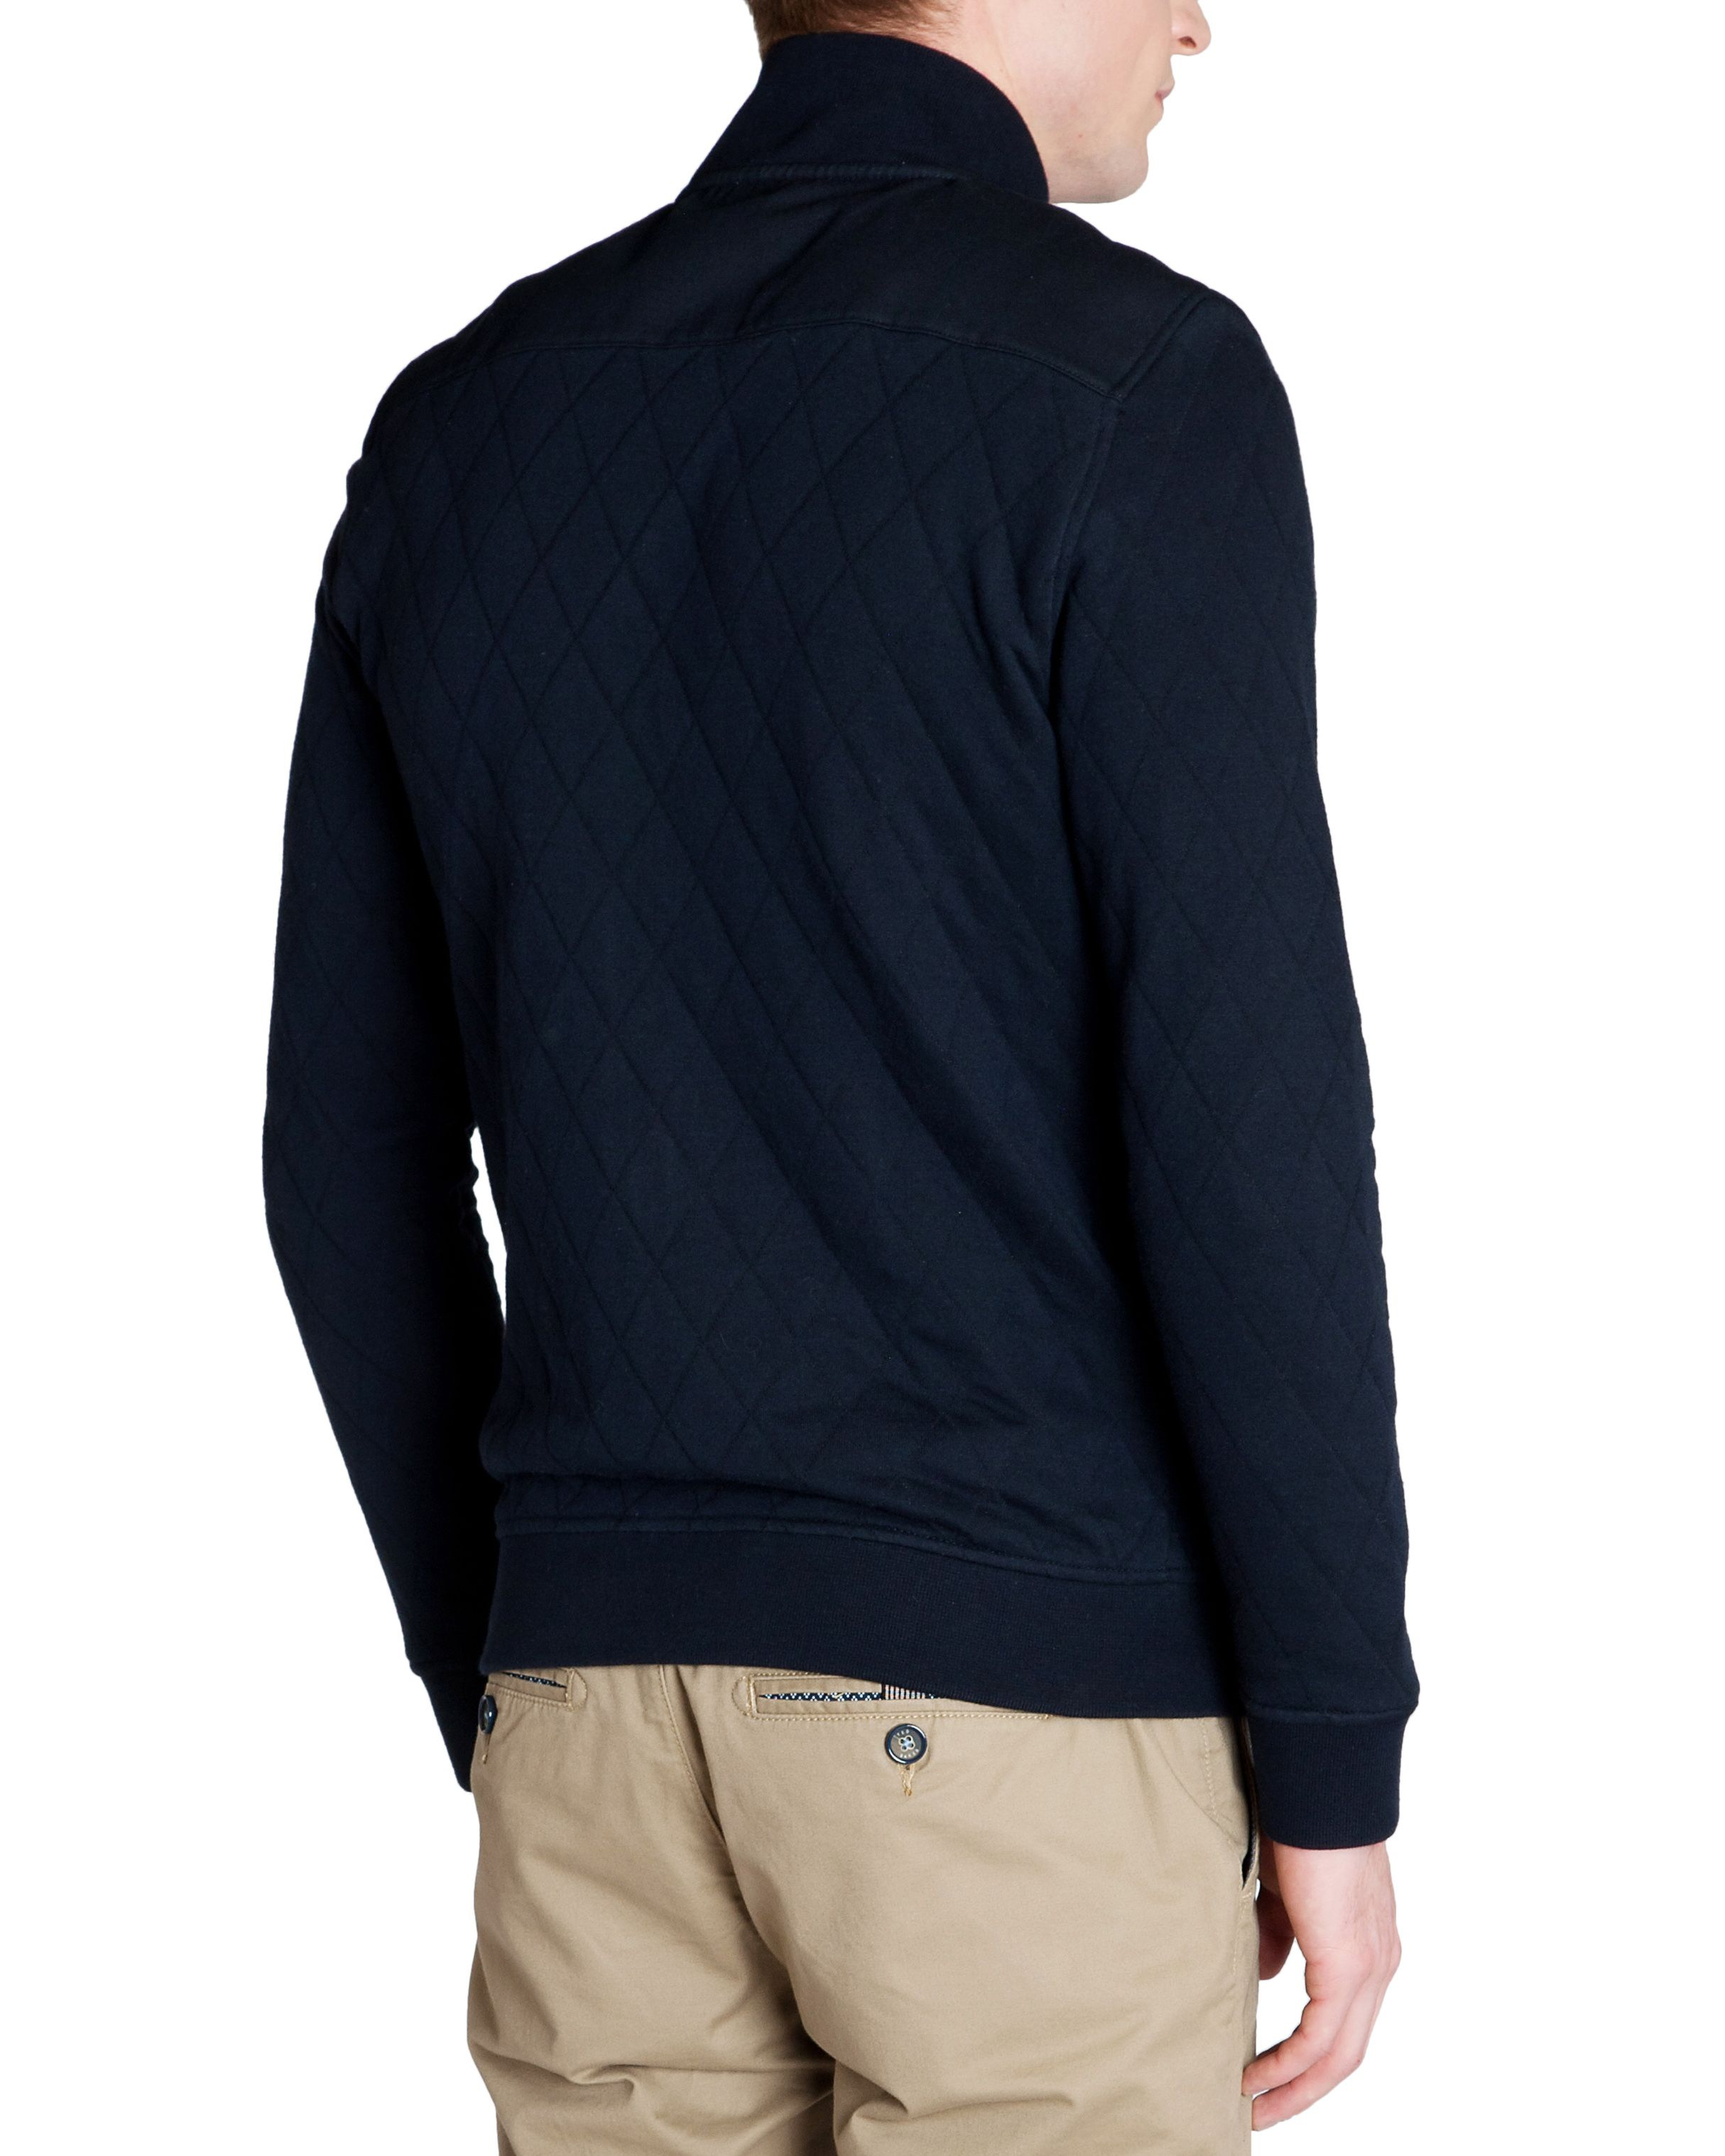 Ted Baker Valylow Quilted Jersey Jacket in Navy (Blue) for Men